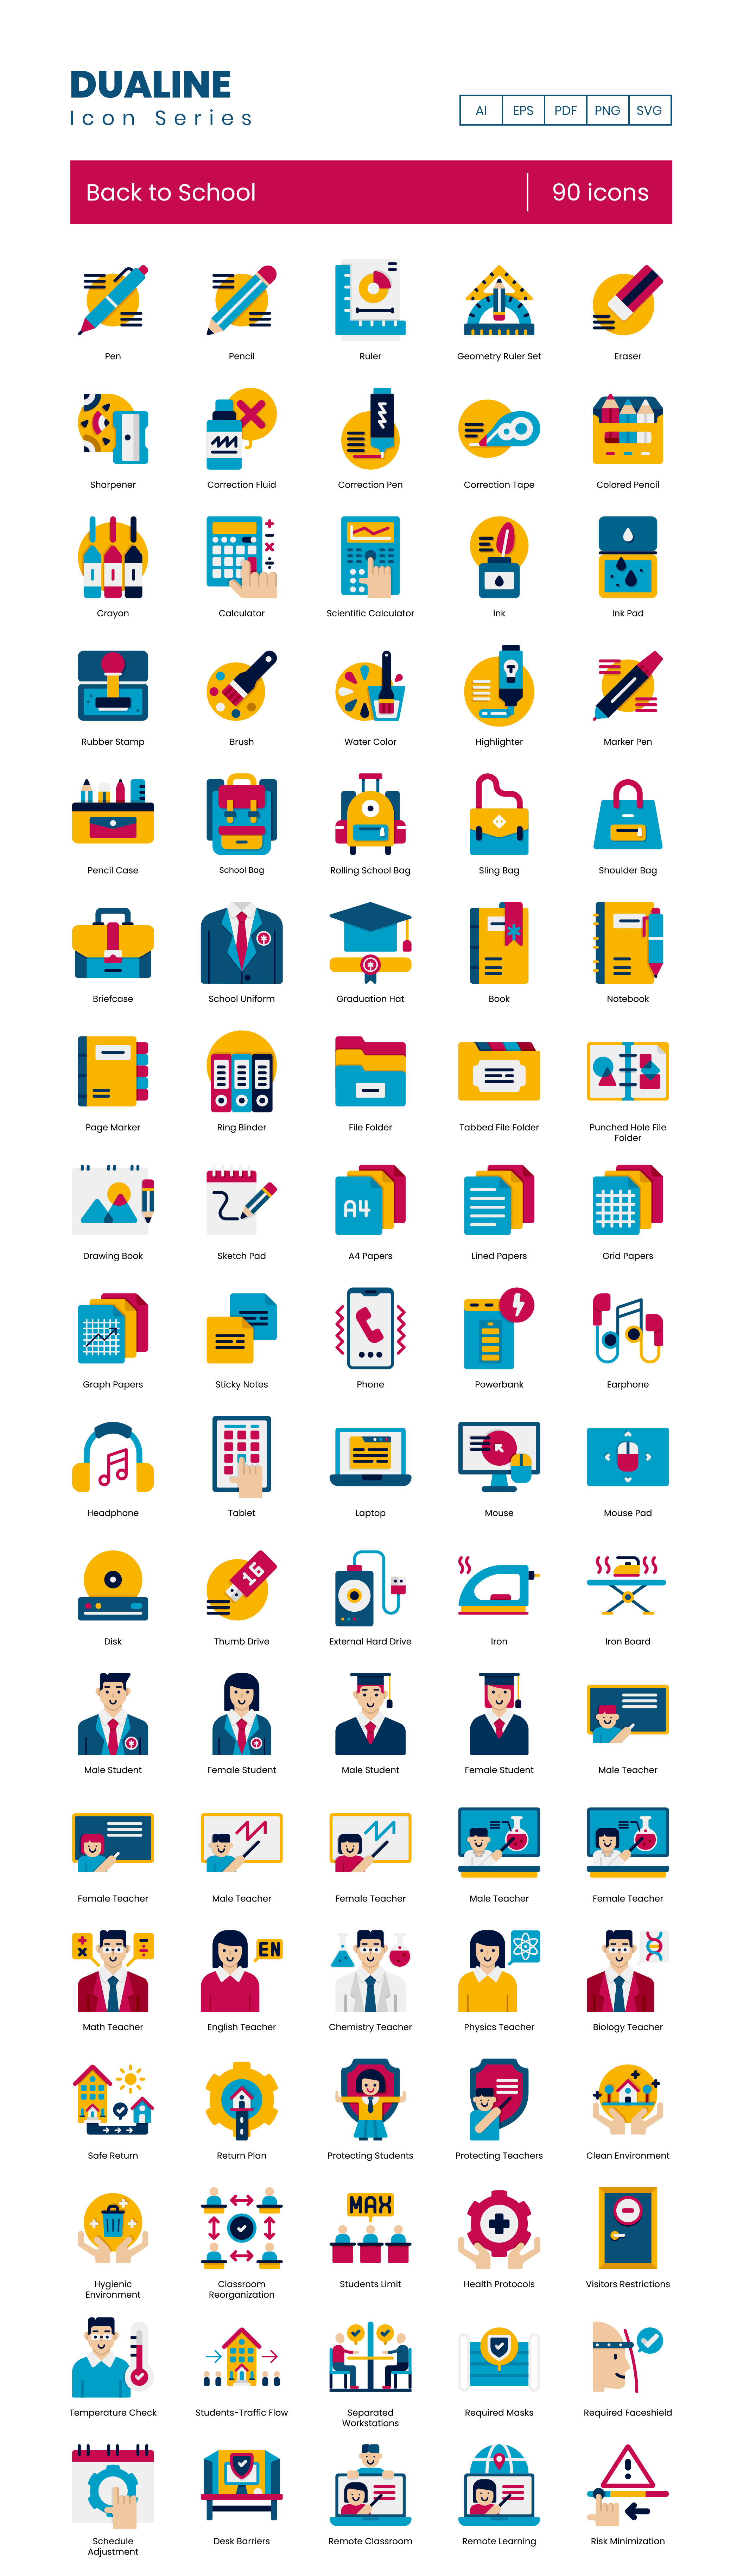 Return to School Vector Icons Preview Image